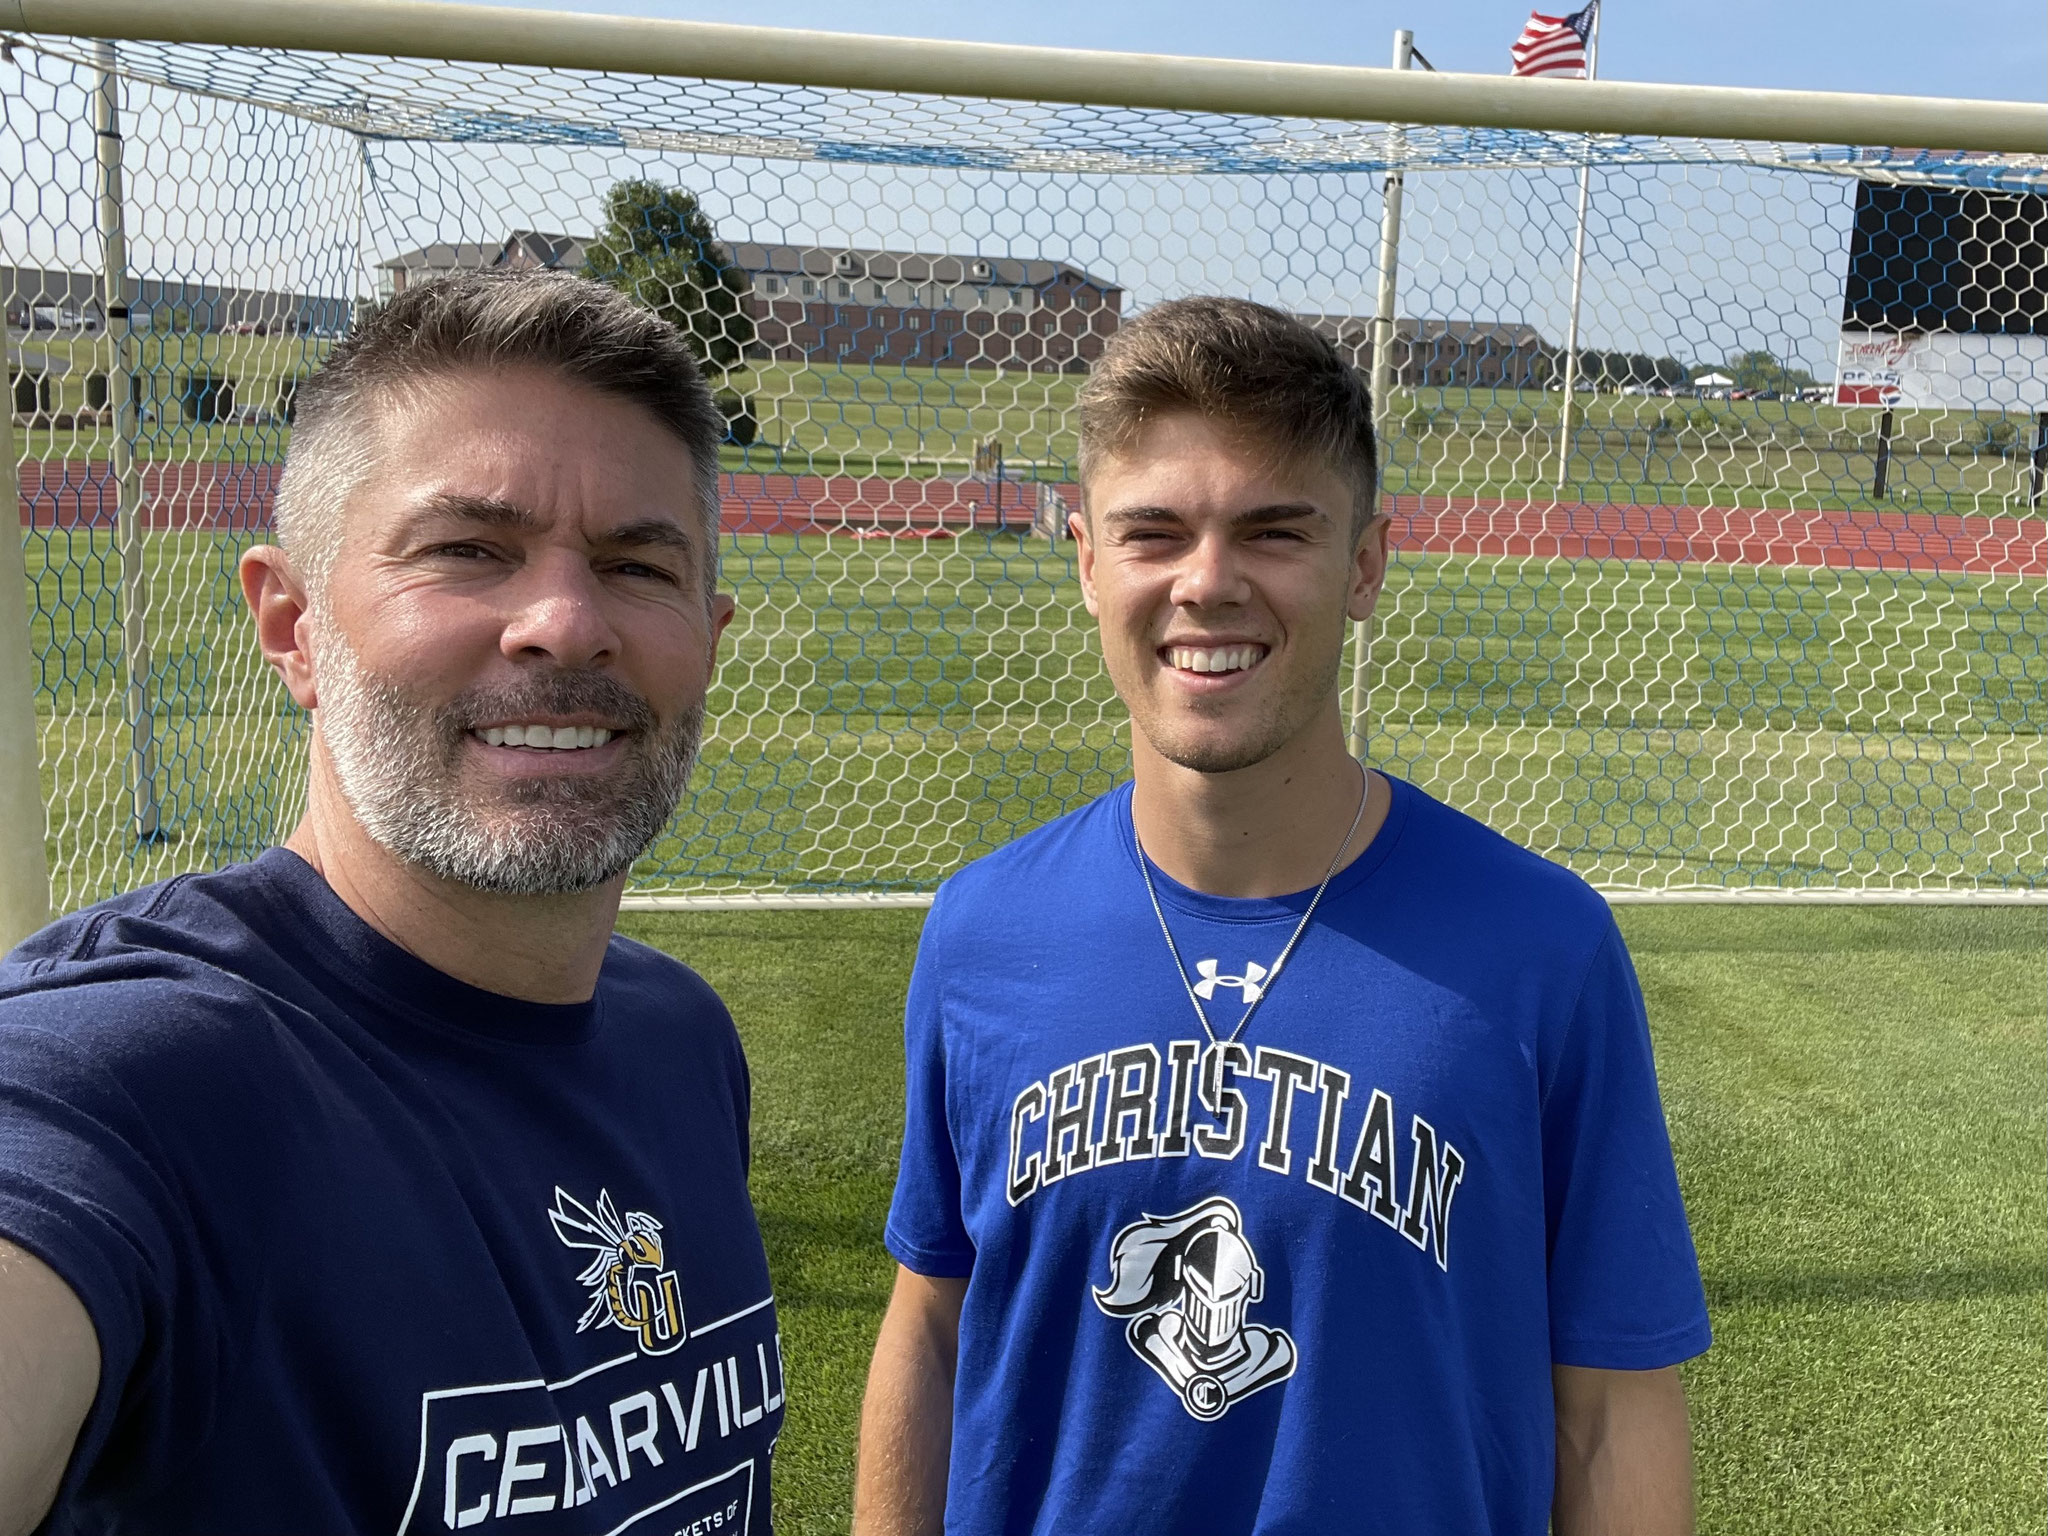 With Jake at Cedarville